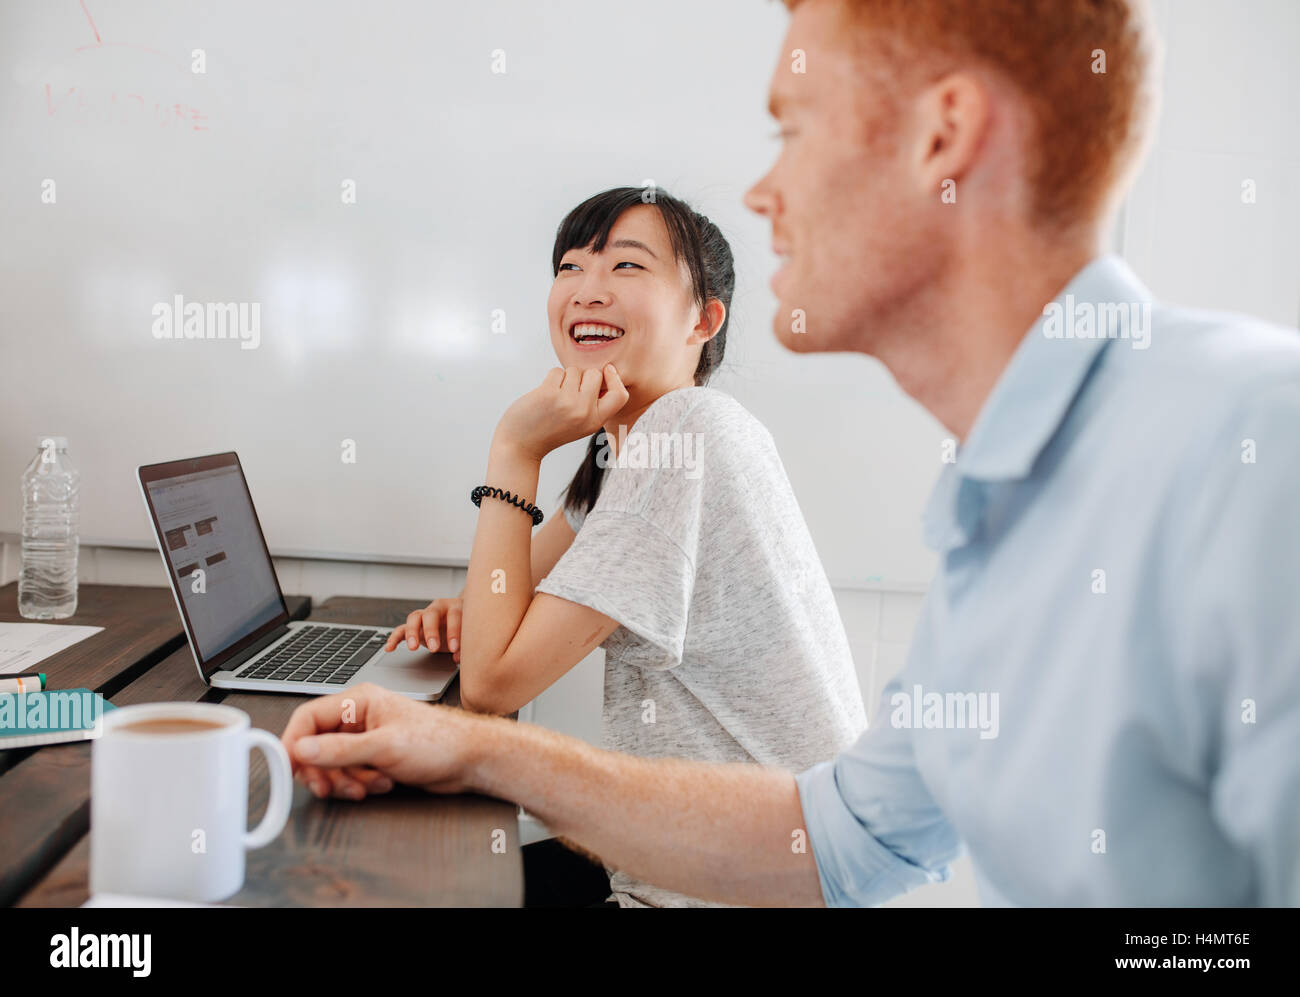 Two happy young business people sitting at conference table during business meeting. Coworkers sitting in boardroom - Stock Image